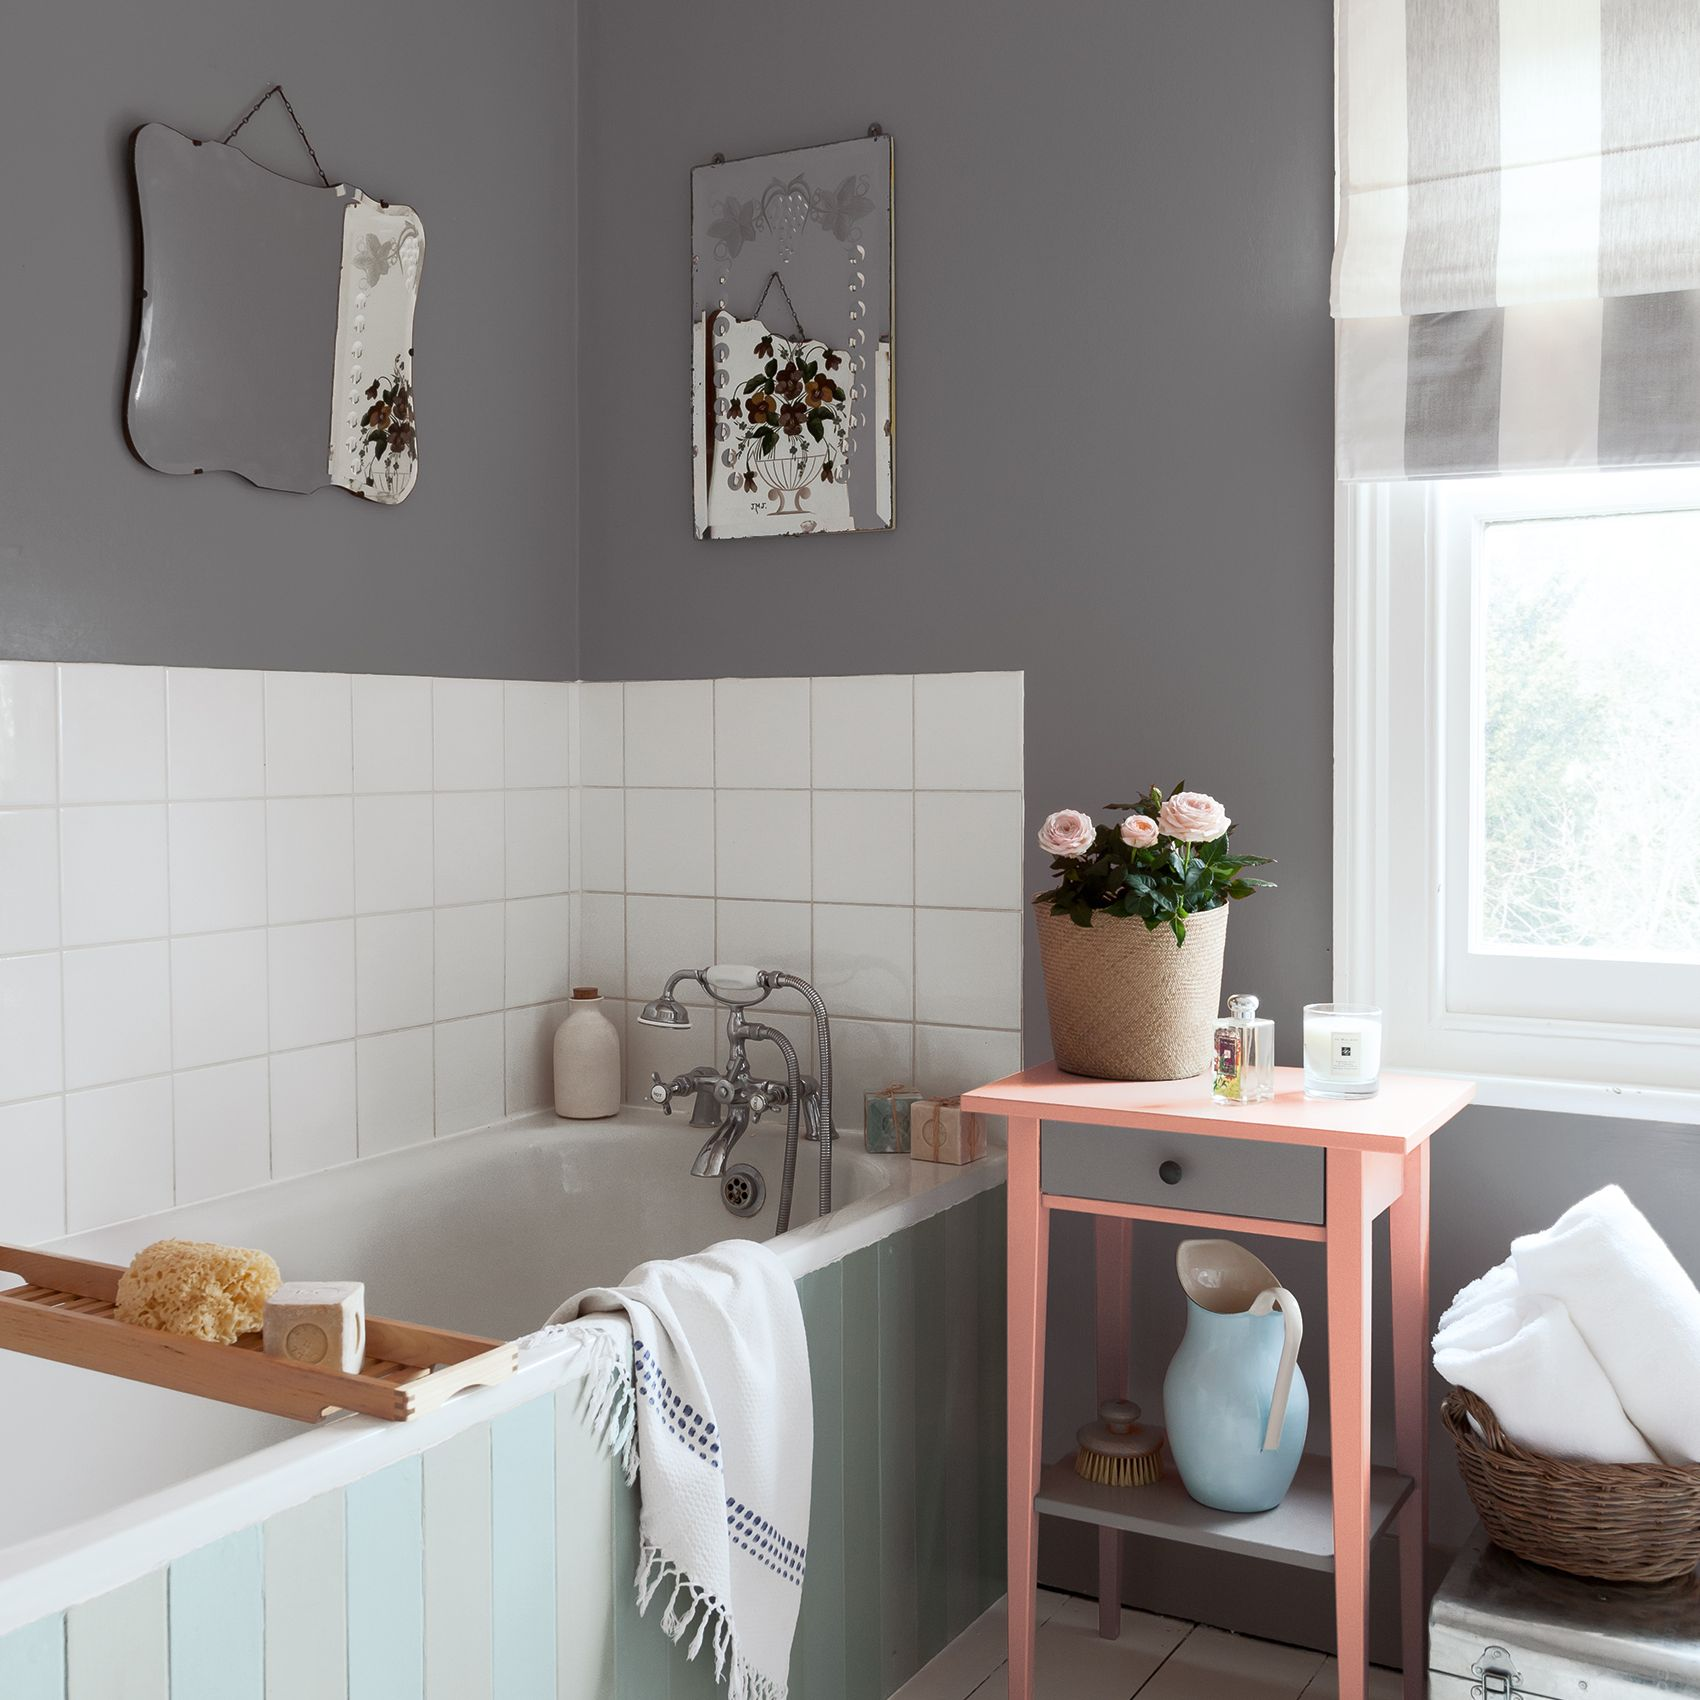 Best Paint For Bathrooms With Humidity: How To Identify, Repair And Protect Against Damp At Home